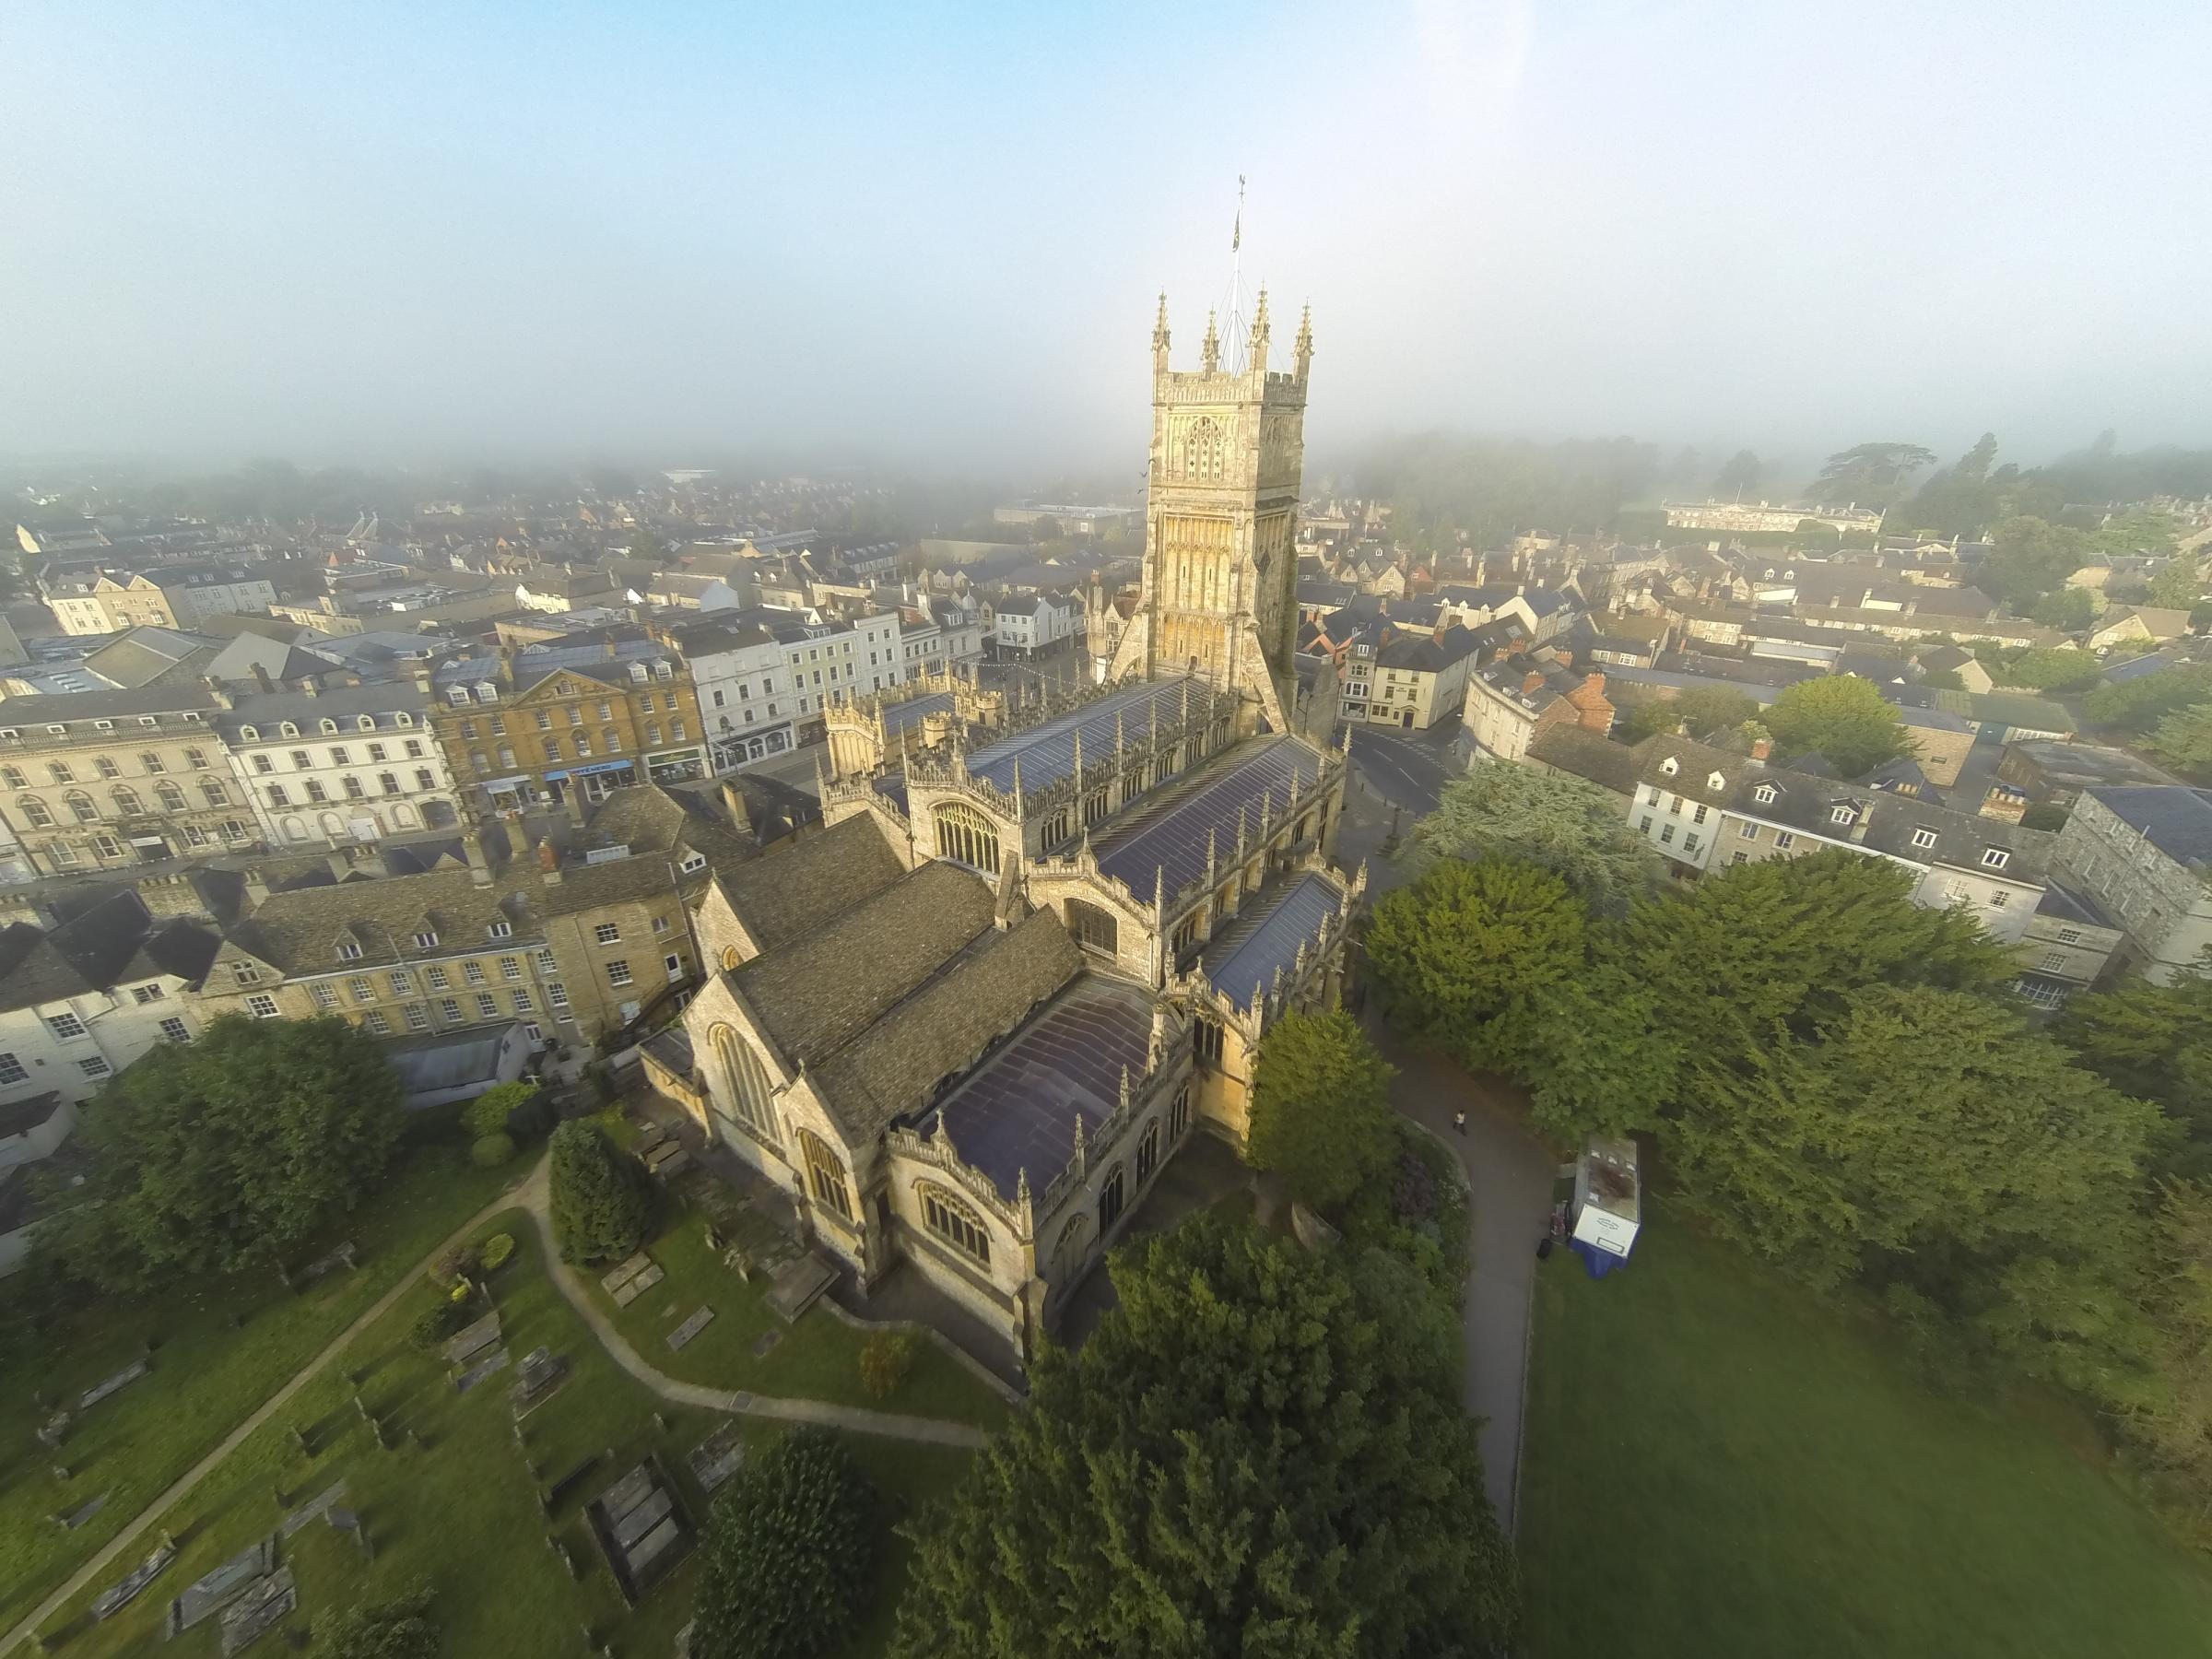 Drone photography business takes off in Cirencester